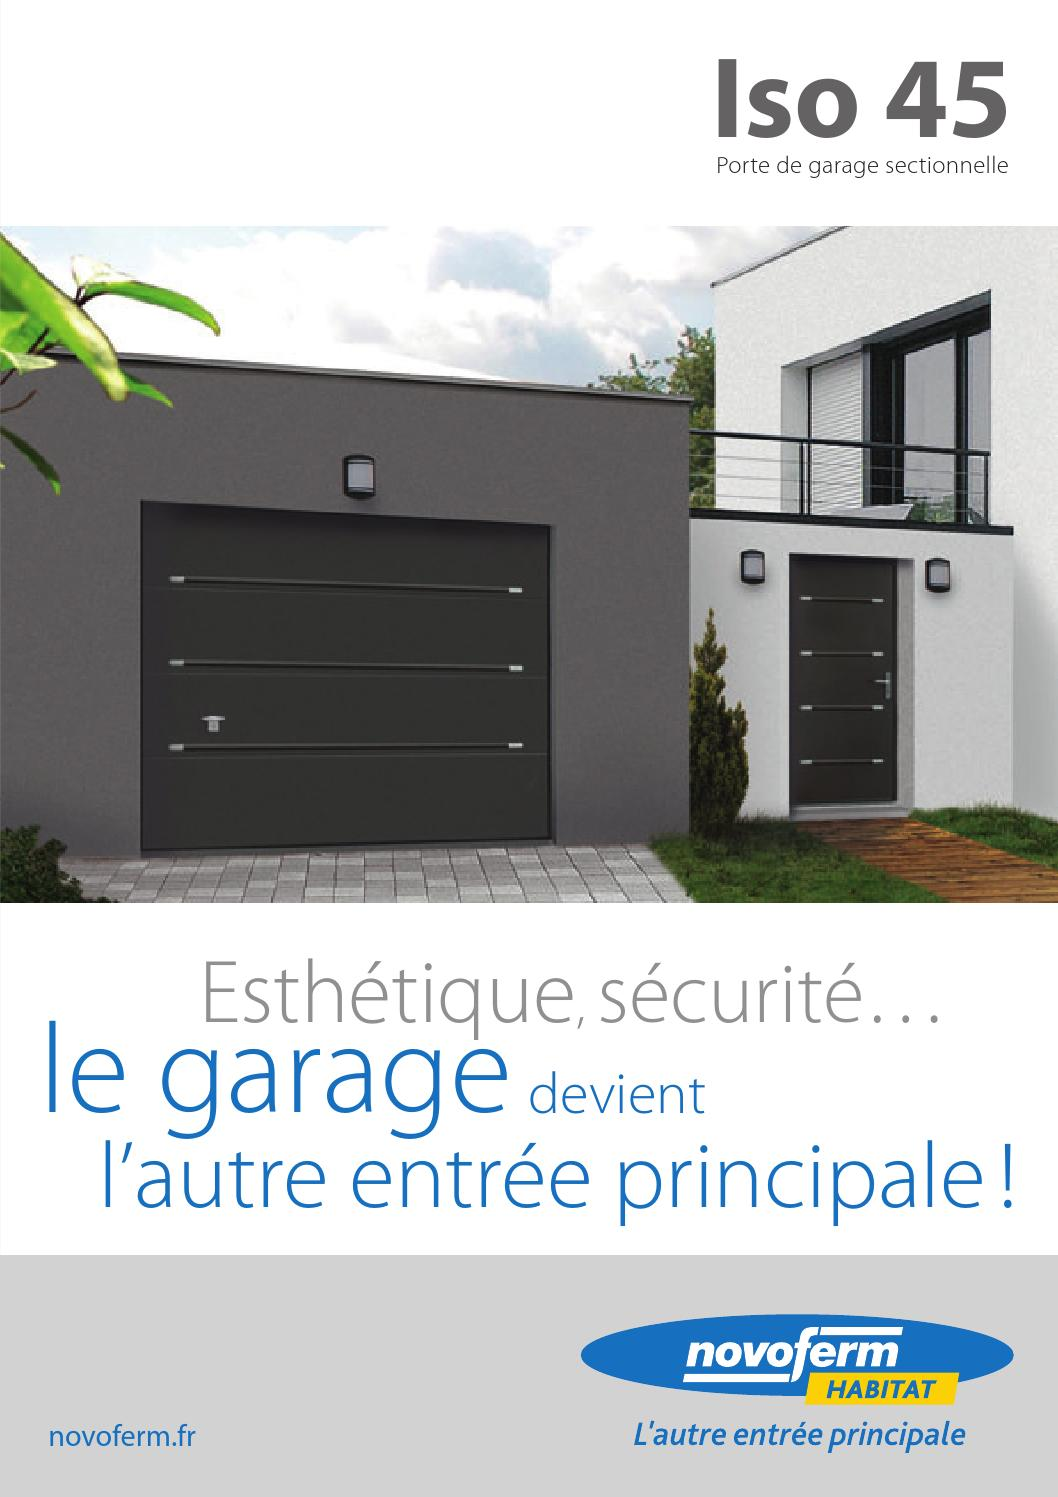 porte de garage sectionnelle iso 45 by uwl wwp communication issuu. Black Bedroom Furniture Sets. Home Design Ideas